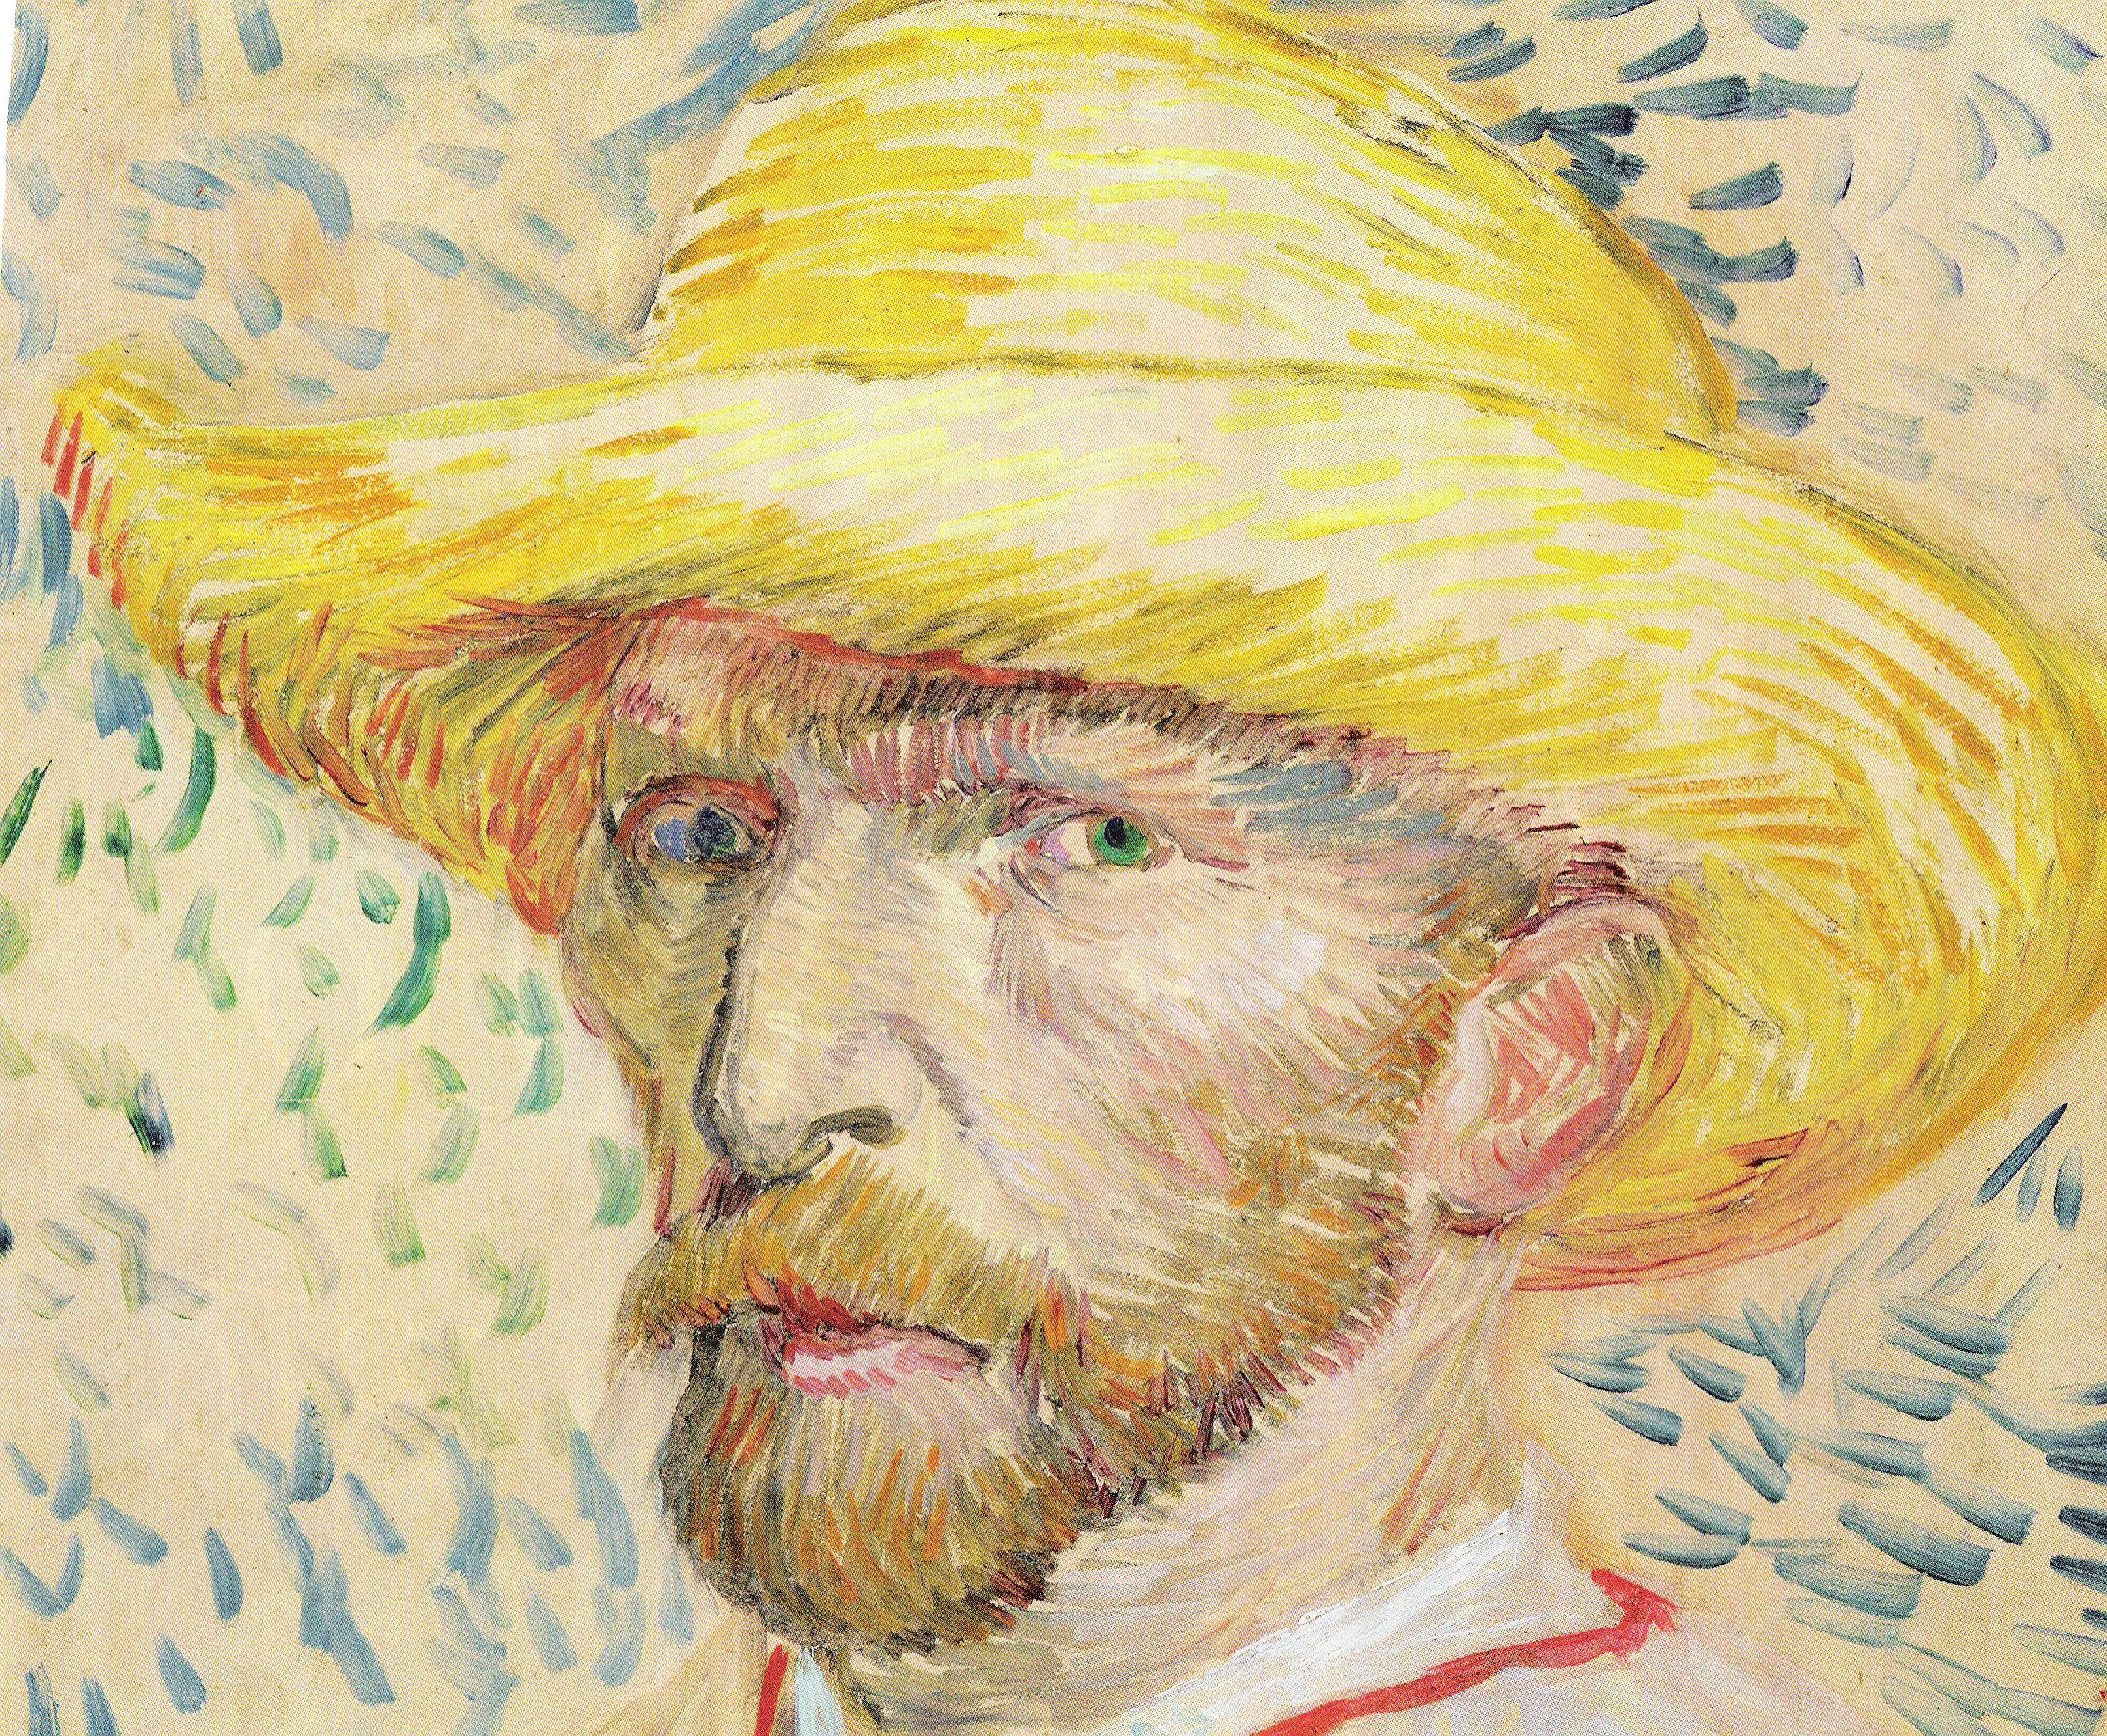 an analysis of the greatest works by vincent van gogh a famous painter Unaware of his own artistic genius, vincent van gogh first tried to learn the art of selling the works of other artists as a young man of 16, he became apprenticed to an art dealer at the firm of goupil & co located at the.